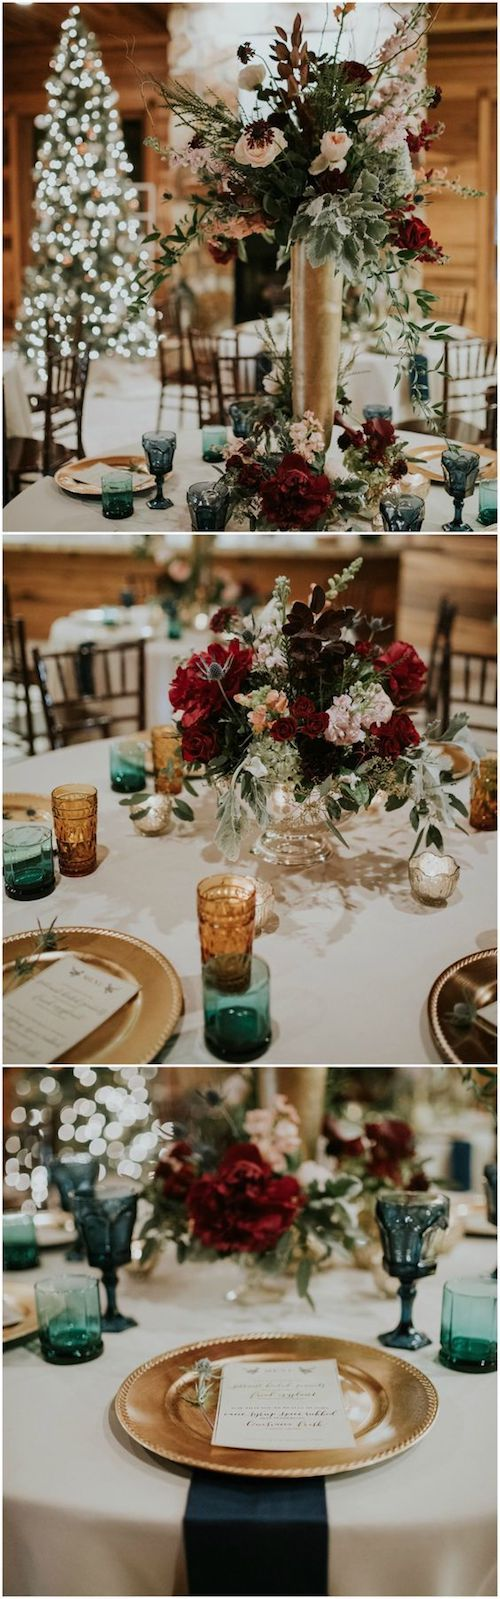 Gold chargers, green glasses, and red floral will give you the Christmas atmosphere you are looking for. Moriah Elisabeth Photography.